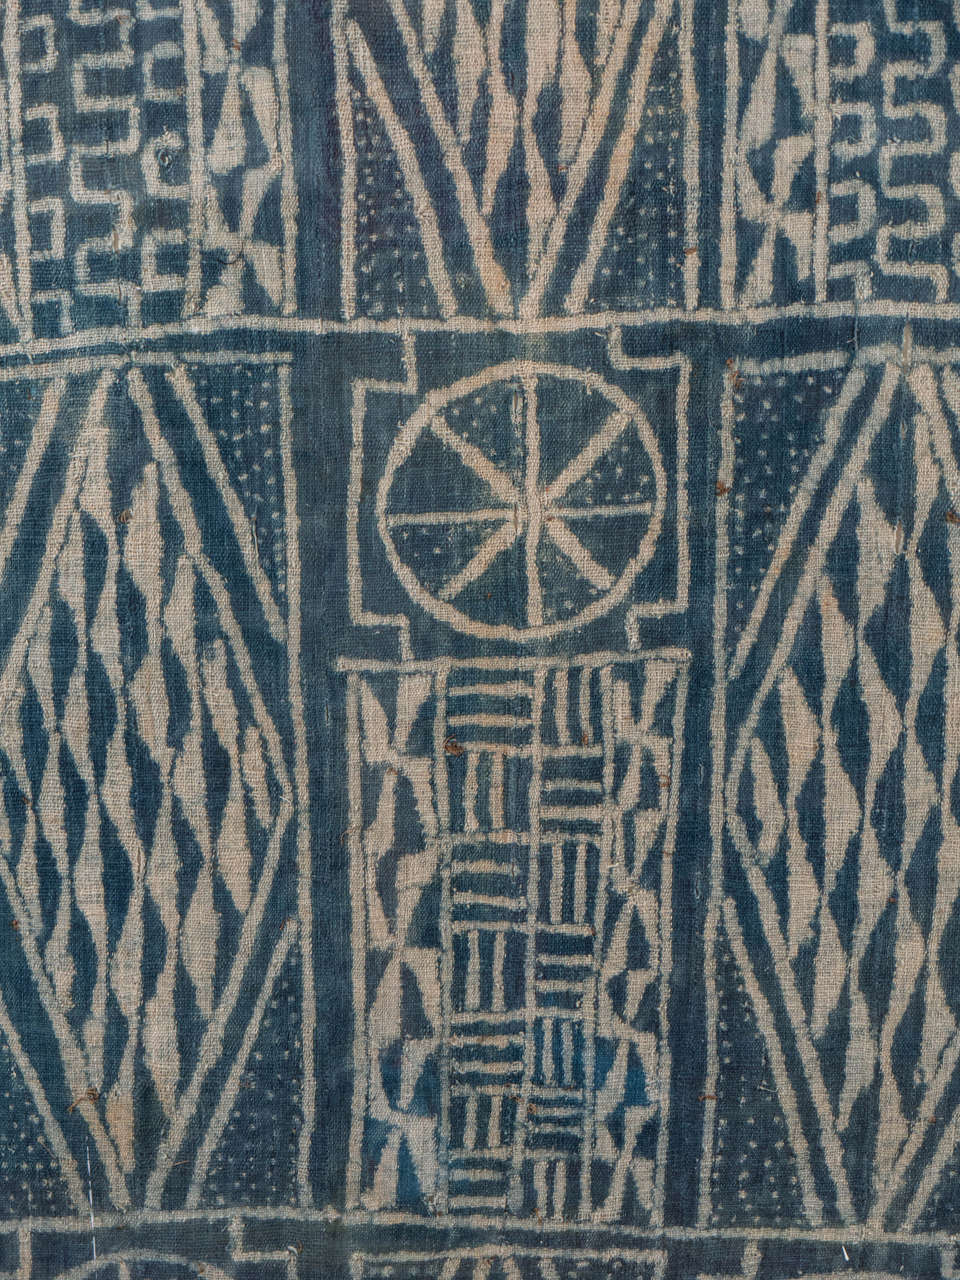 African Cameroon Ceremonial Chiefs Cloth 2